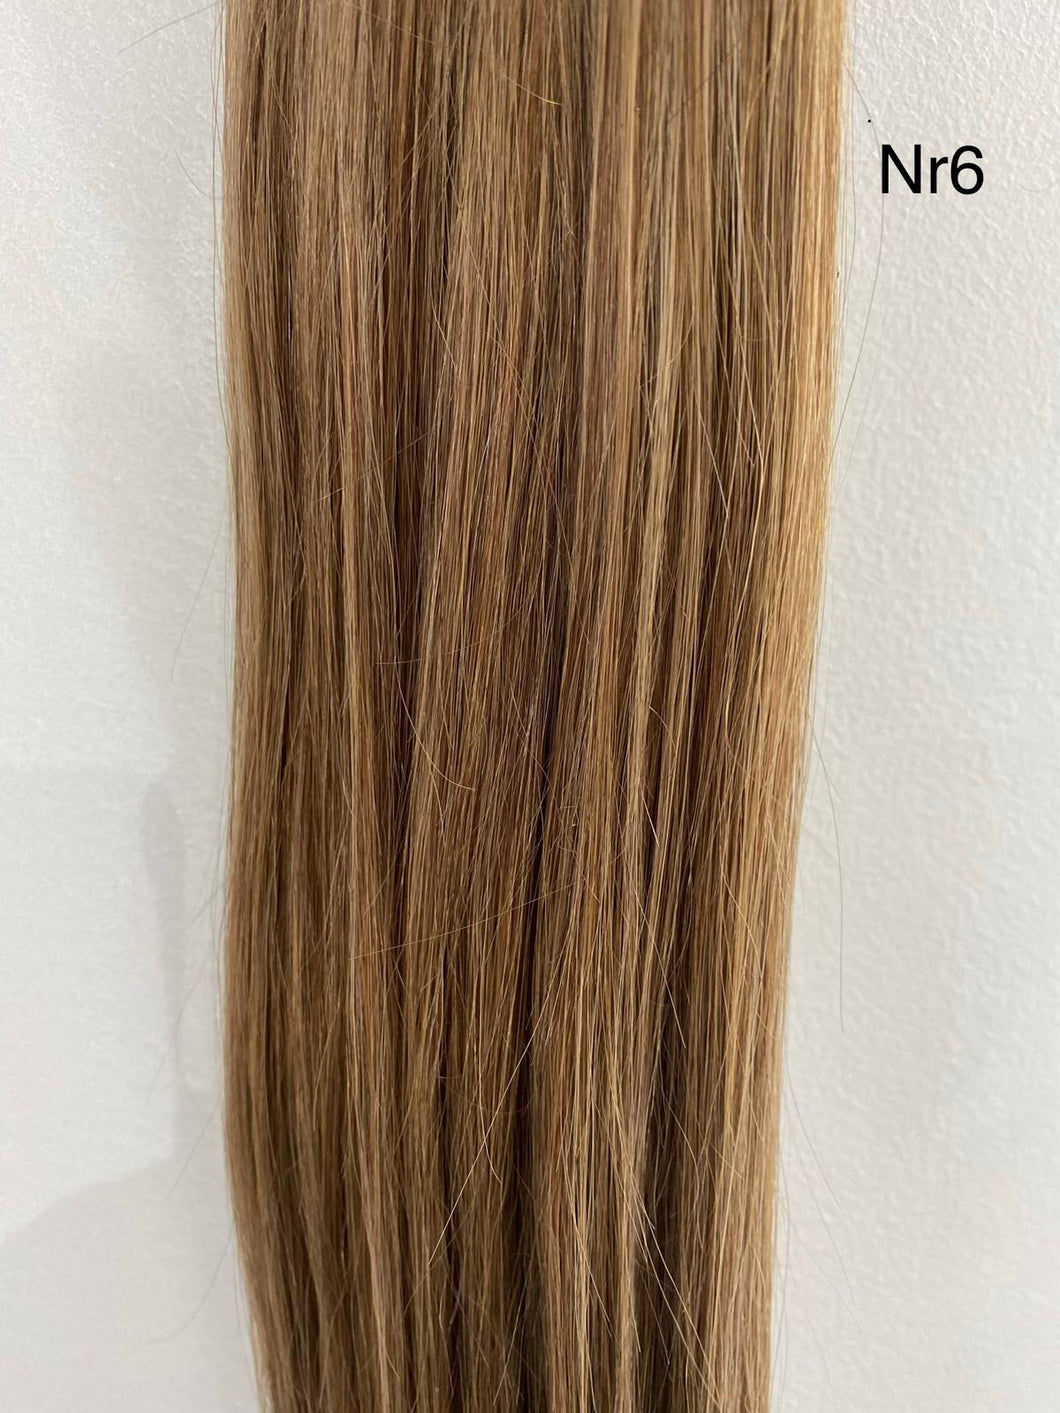 Clip-in Hairextension 100% echt haar #6 - LASIDORE Beauty Bar